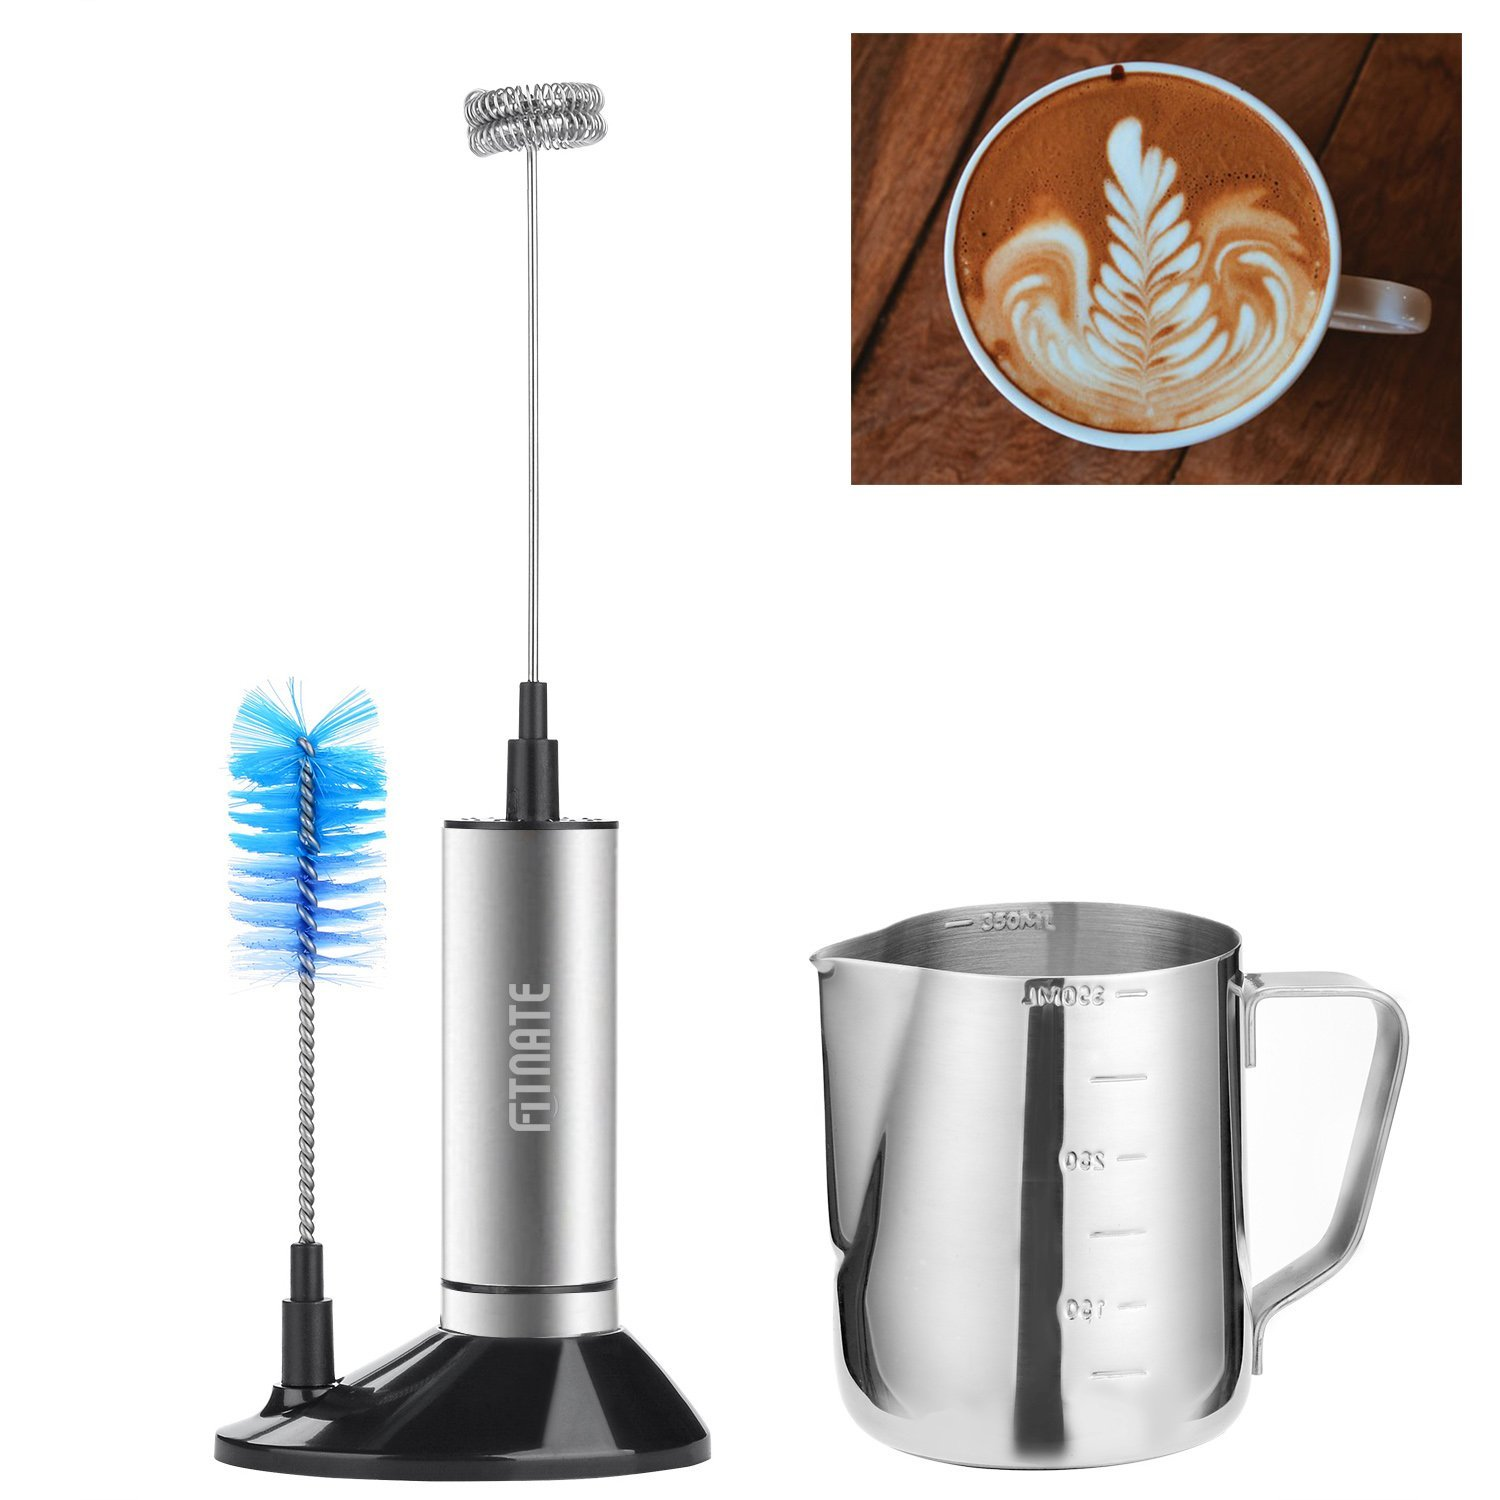 Milk Frother, Fitnate Electric Handheld Milk Frother Set, Stainless Steel Whisk & 12oz Milk Frother Pitcher for Espresso Machines, Milk Frothers & Latte Art